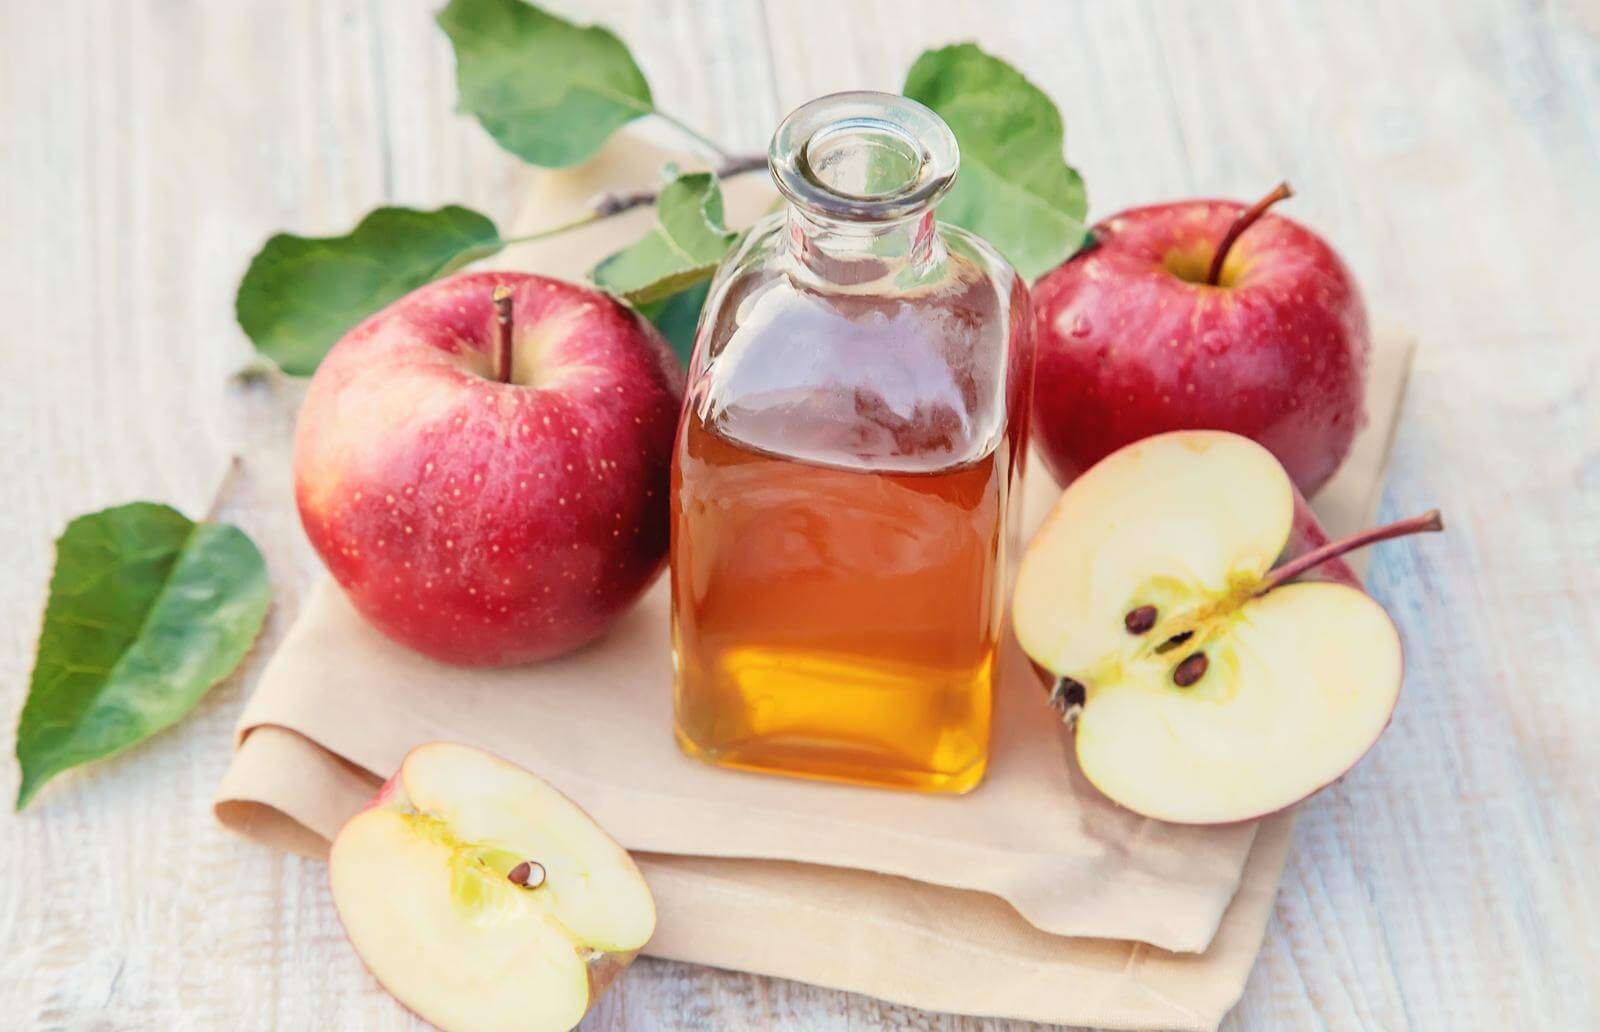 Vinegar, has a low pH; meaning it is acidic.  Apple cider vinegar is also an acidic vinegar.  The acetic acid in vinegar helps cure Candida problems.